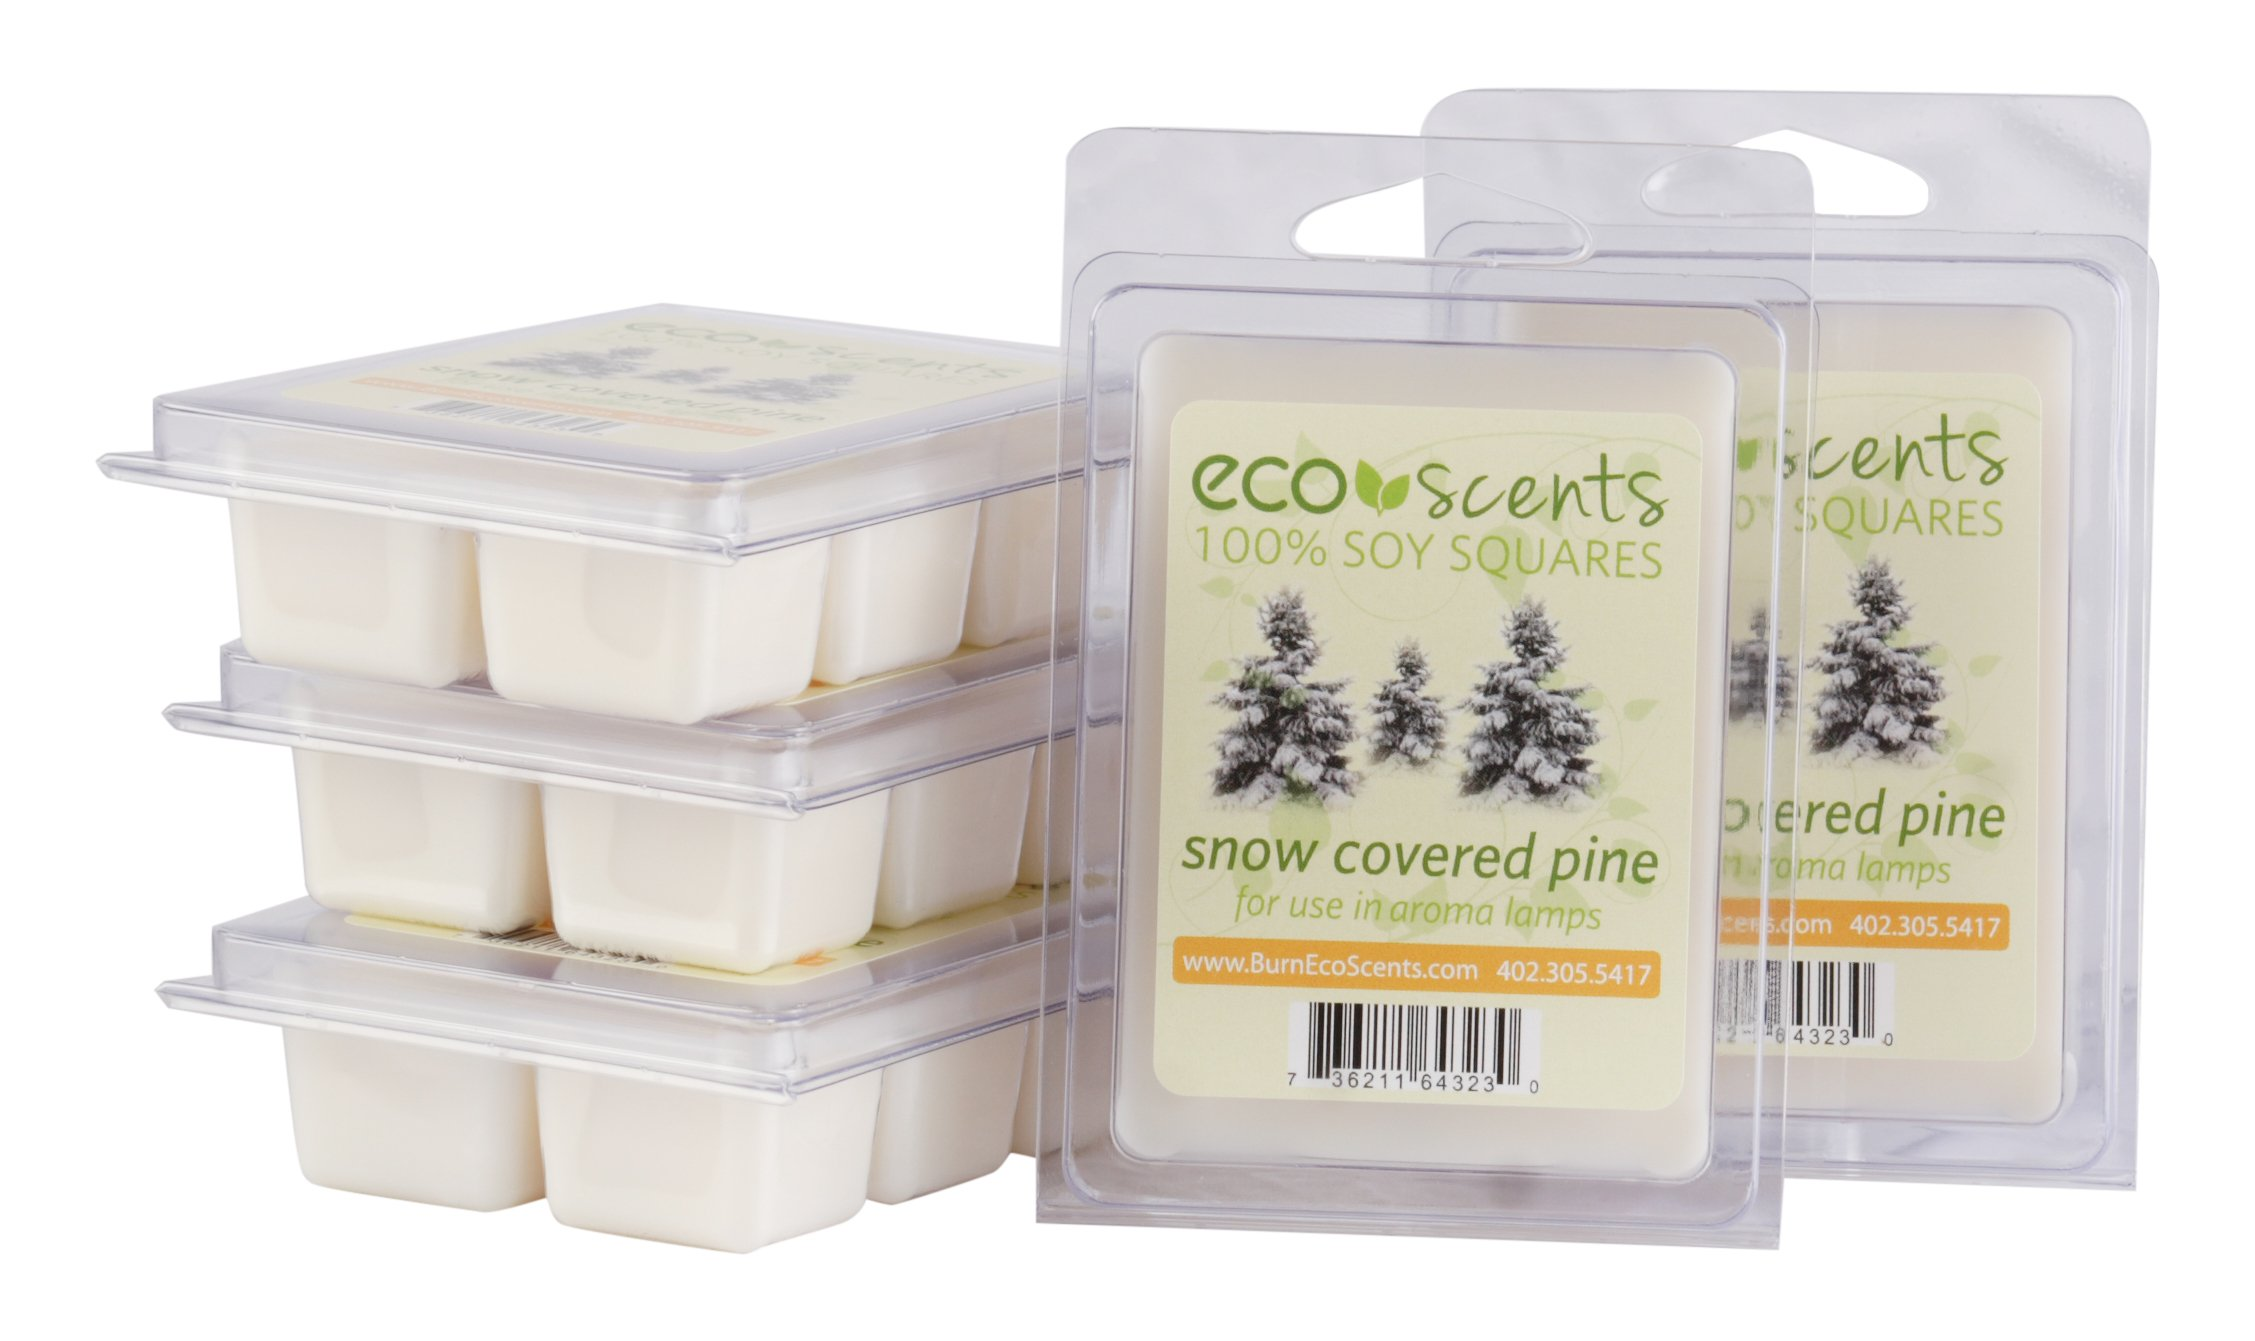 EcoScents Snow covered Pine Wax Melts (5 Pack), White